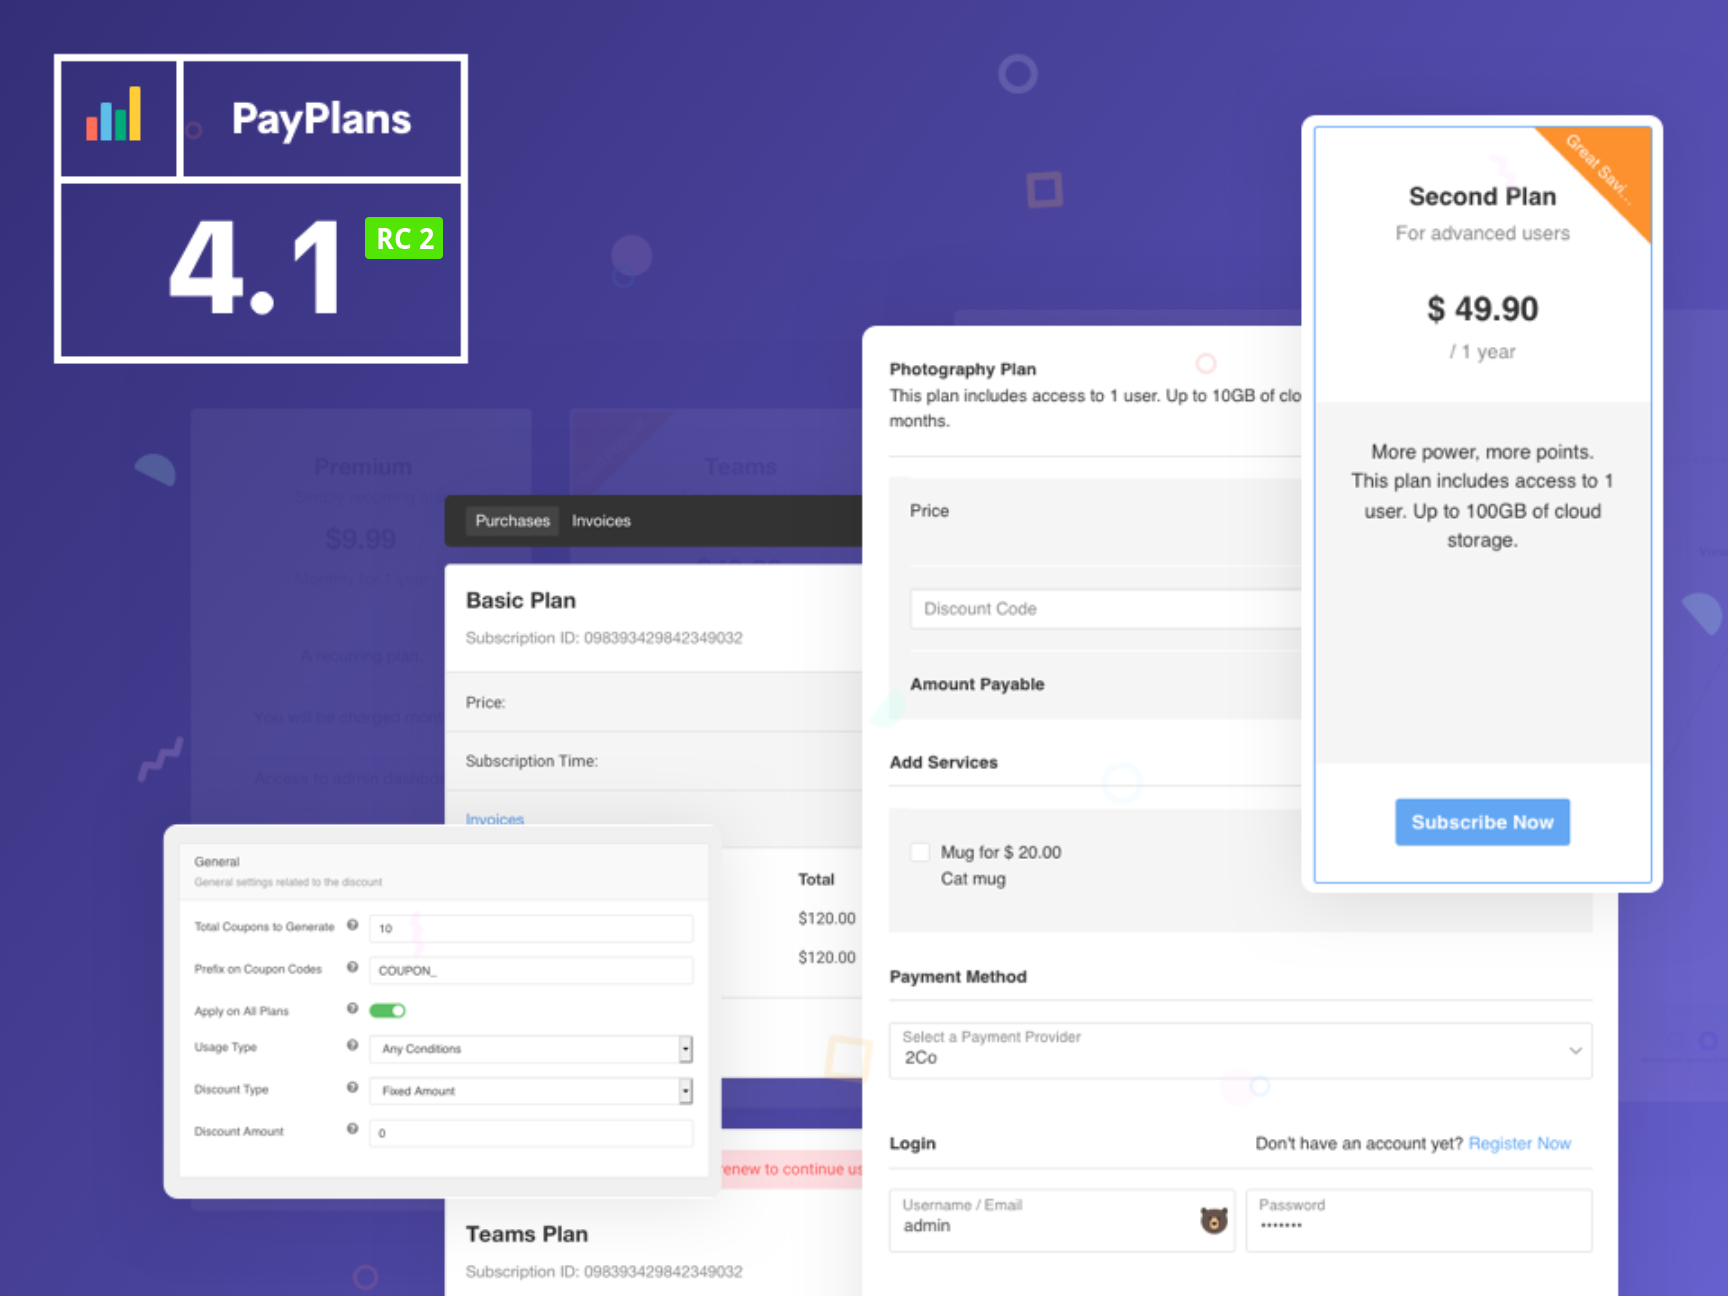 PayPlans 4.1 RC 2 Released